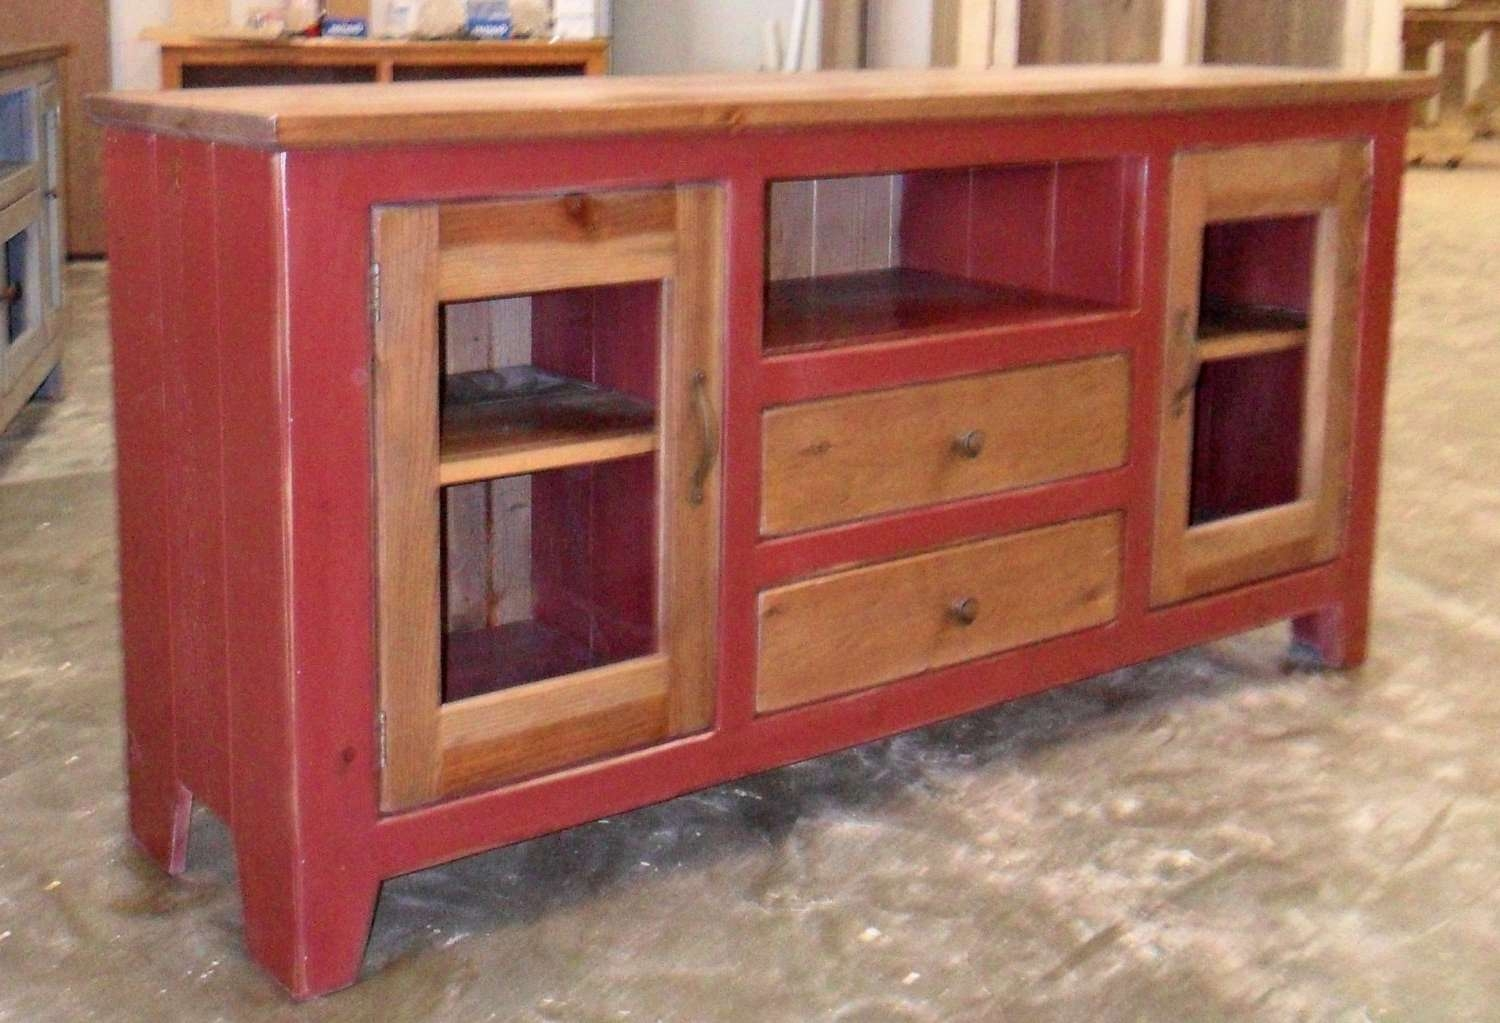 Media Cabinet Reclaimed Wood Tv Stand Rustic Vintage Intended For Red Tv Cabinets (View 3 of 20)